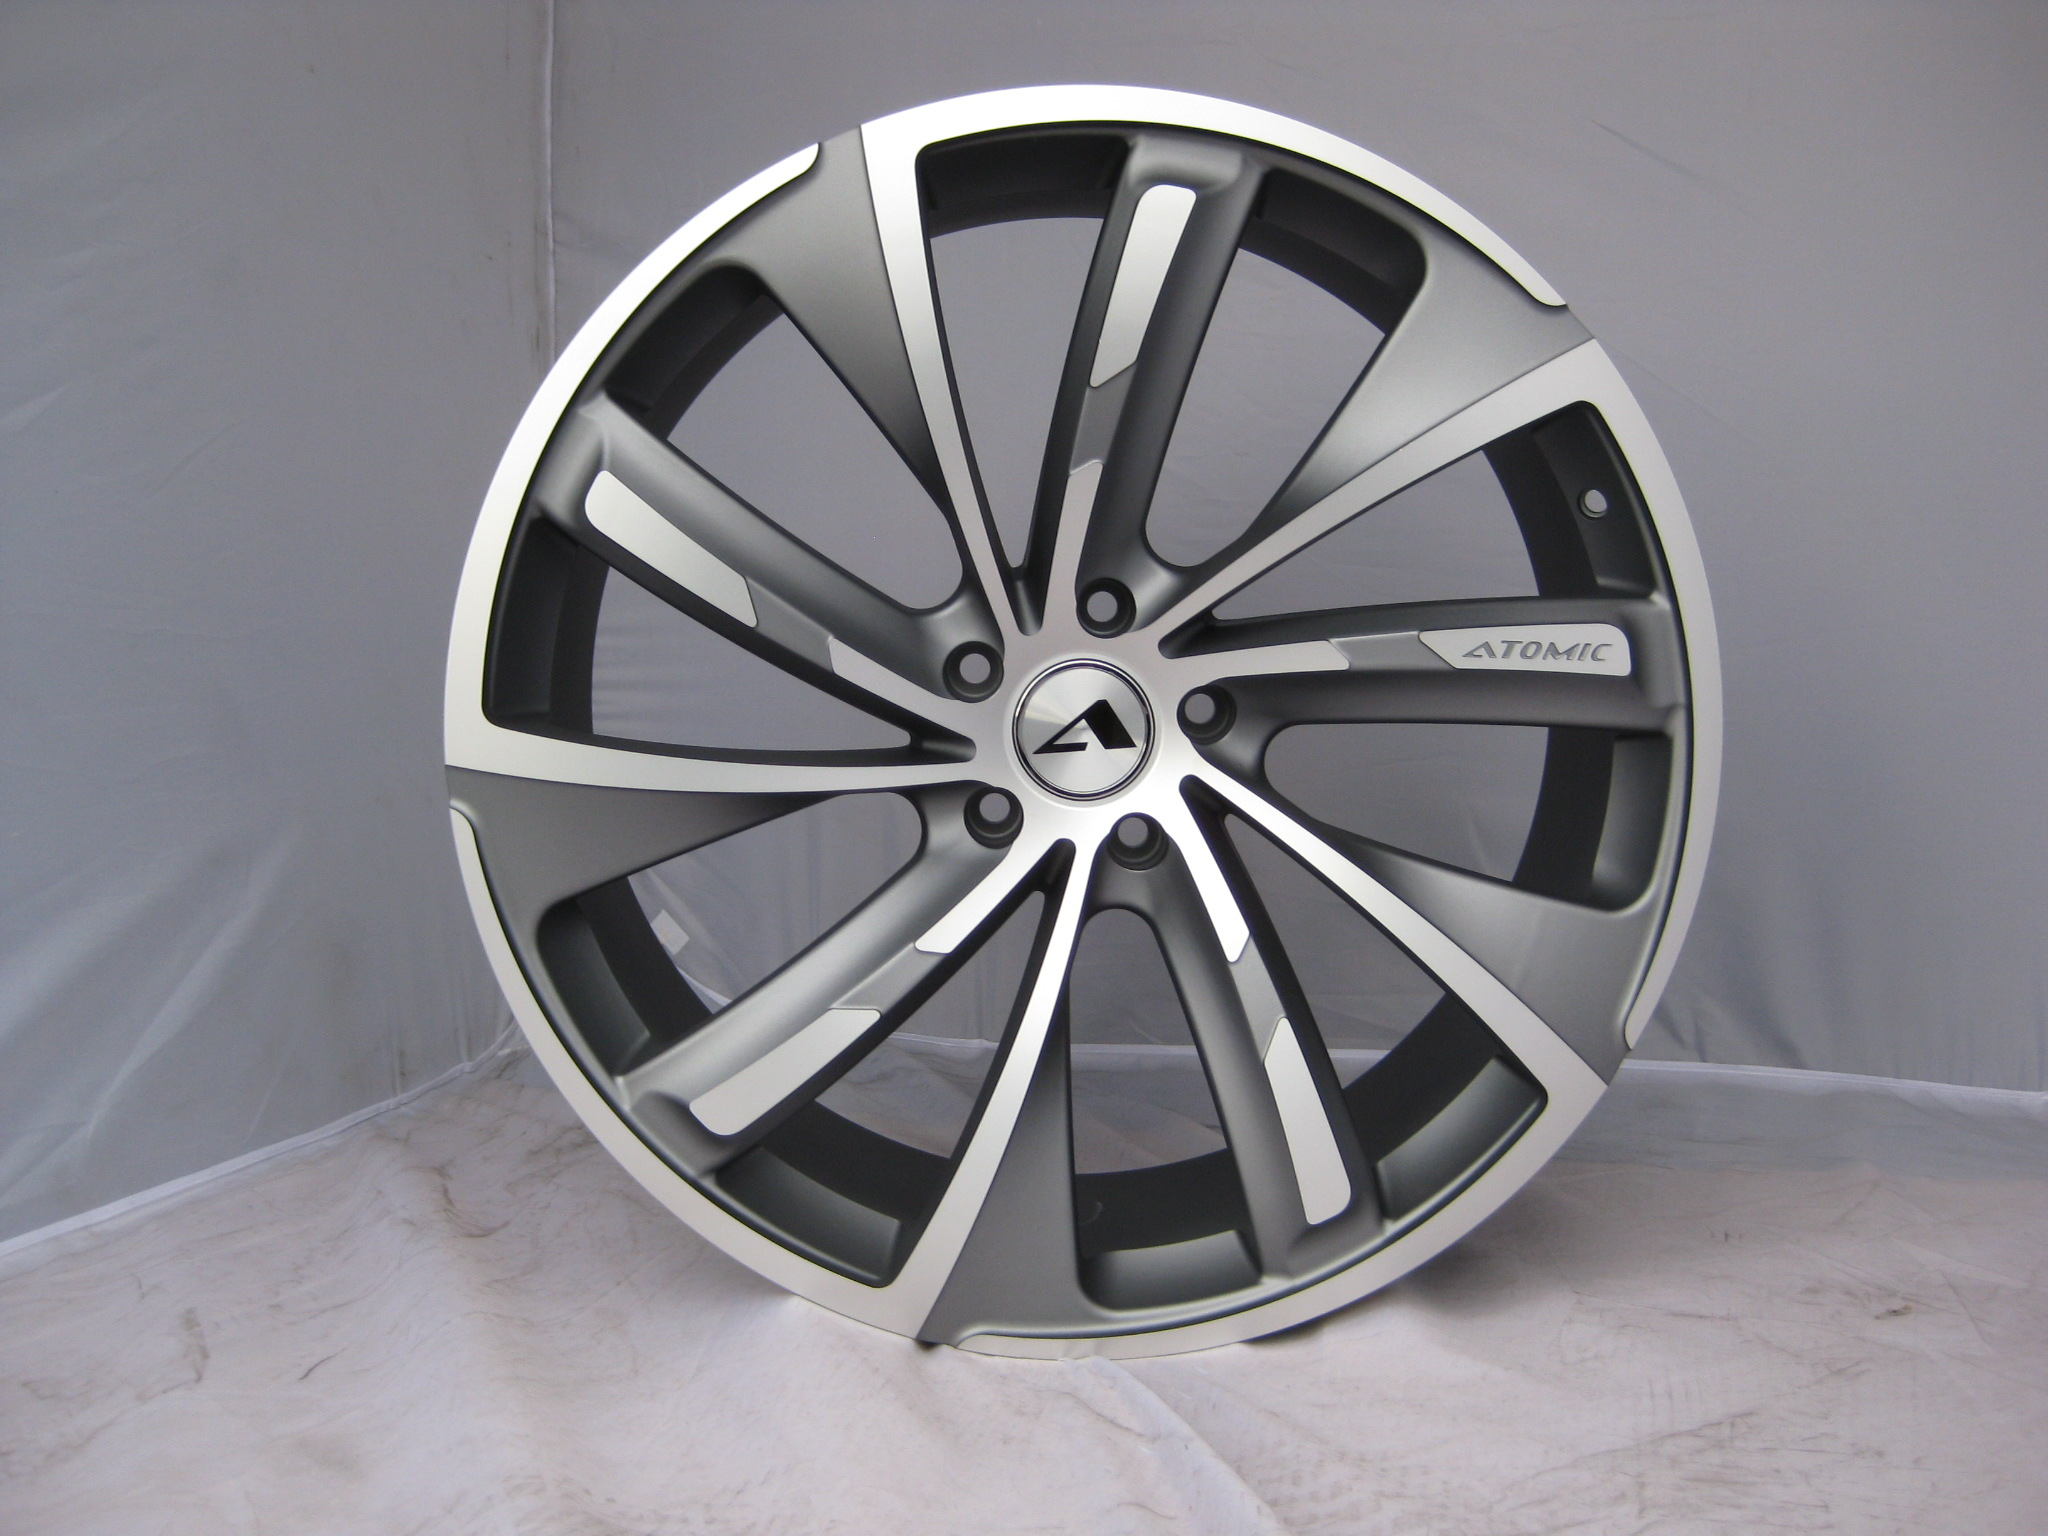 "NEW 20"" ATOMIC TURBINE ALLOY WHEELS IN MATT GUNMETAL WITH POLISHED DETAIL et35 or et45"